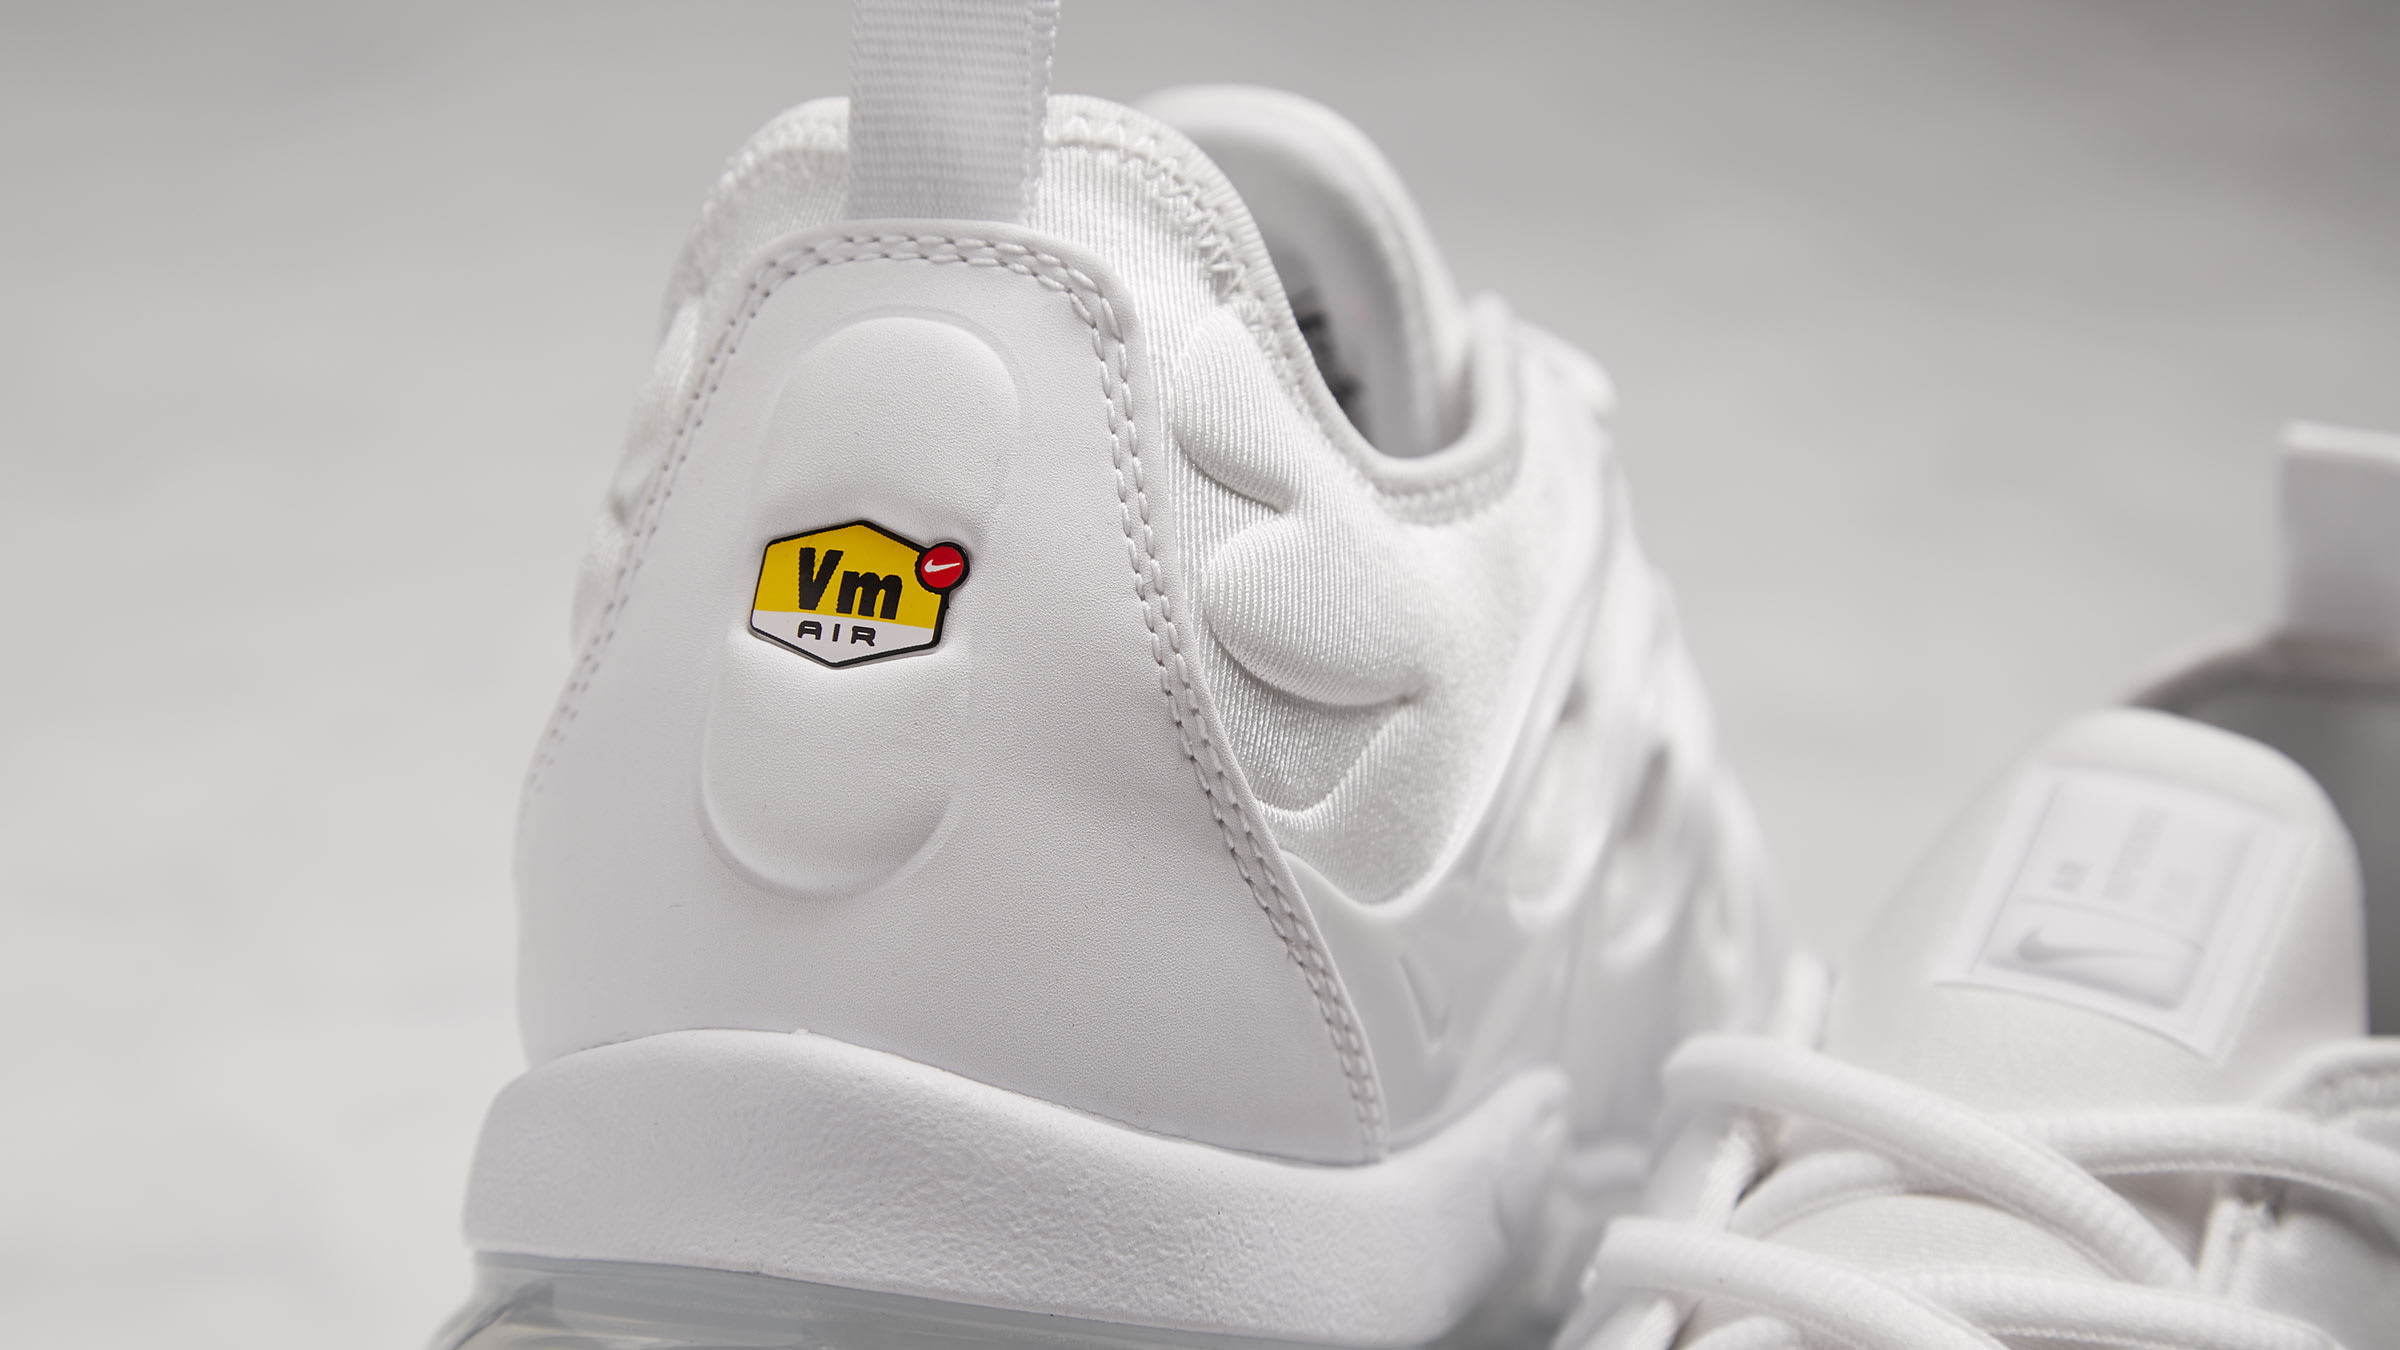 92fe3ab6767 Nike Air Vapormax Plus. White   Pure Platinum£169. like walking on clouds